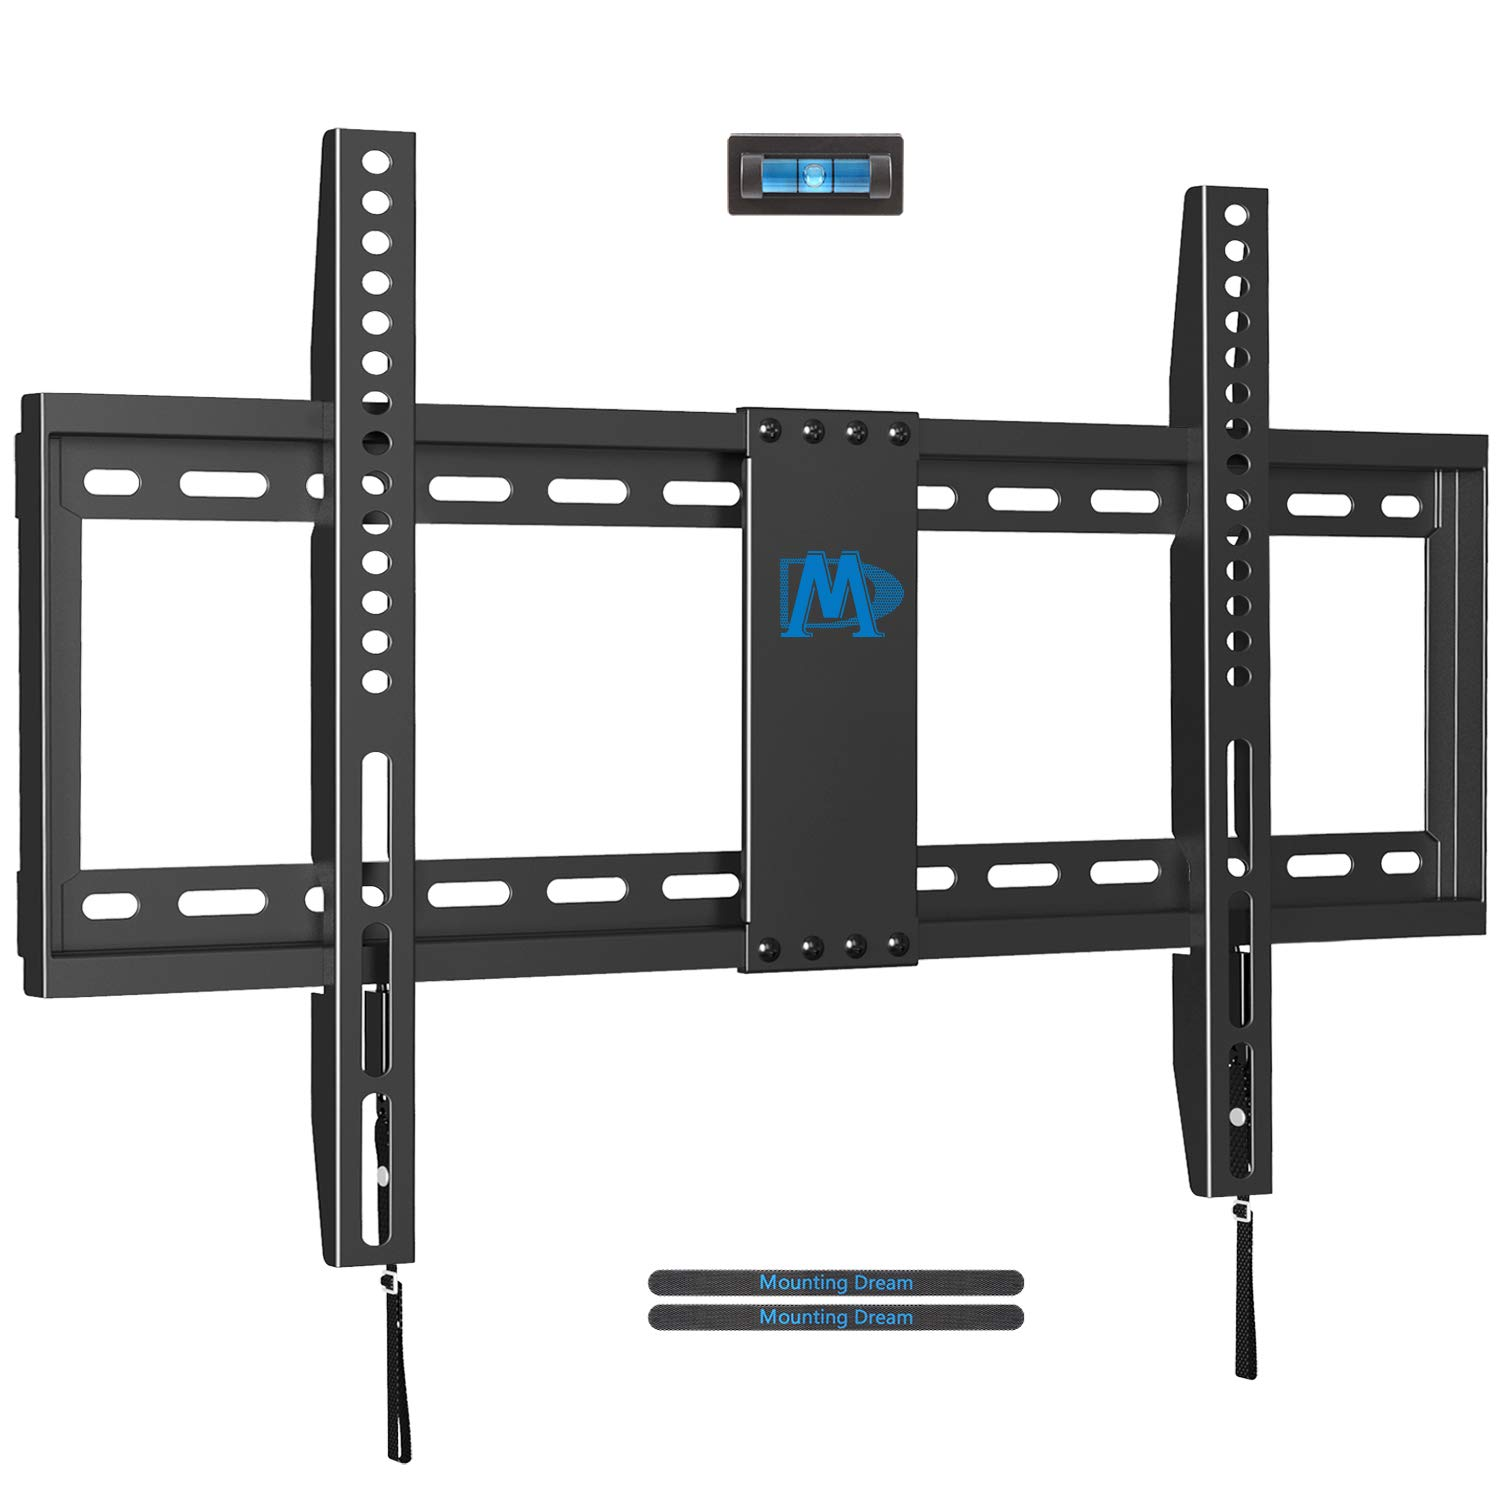 Mounting Dream MD2163-K Fixed TV Wall Mount Bracket for Most 42-70 Inch LED, LCD and Plasma TVs up to VESA 600 x 400mm and 132 LBS Loading Capacity, Low Profile